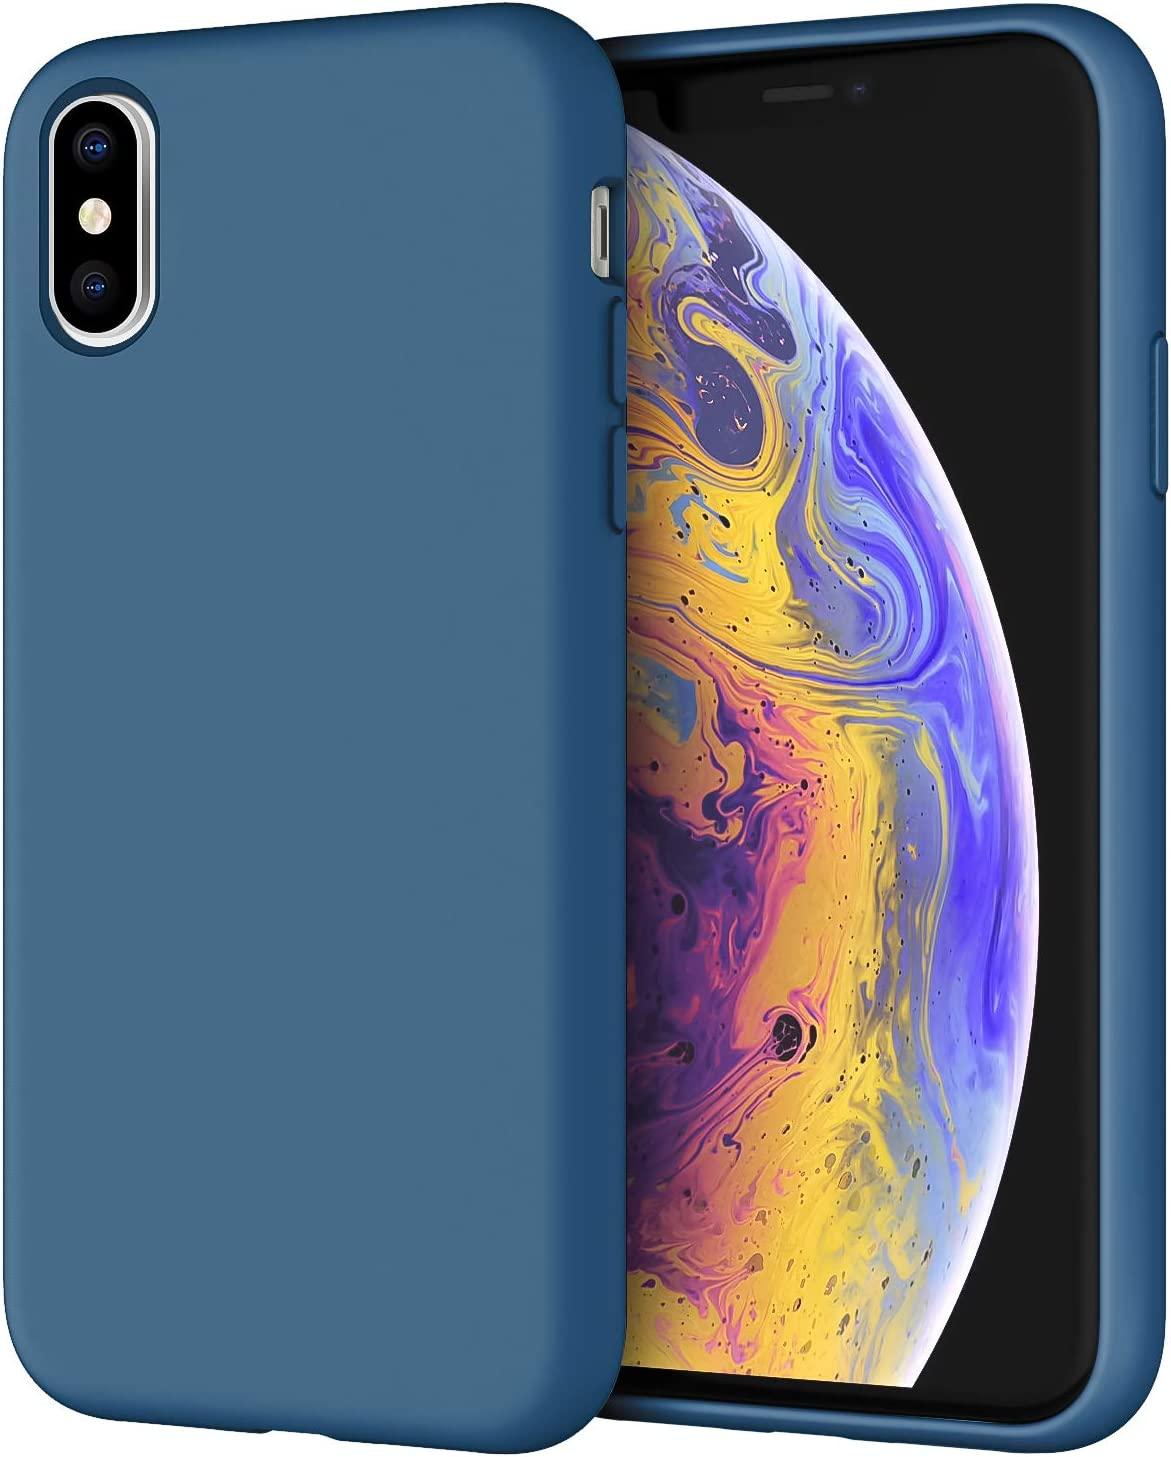 JETech Silicone Case for iPhone X, iPhone Xs, 5.8-Inch, Silky-Soft Touch Full-Body Protective Case, Shockproof Cover with Microfiber Lining, Blue Cobalt